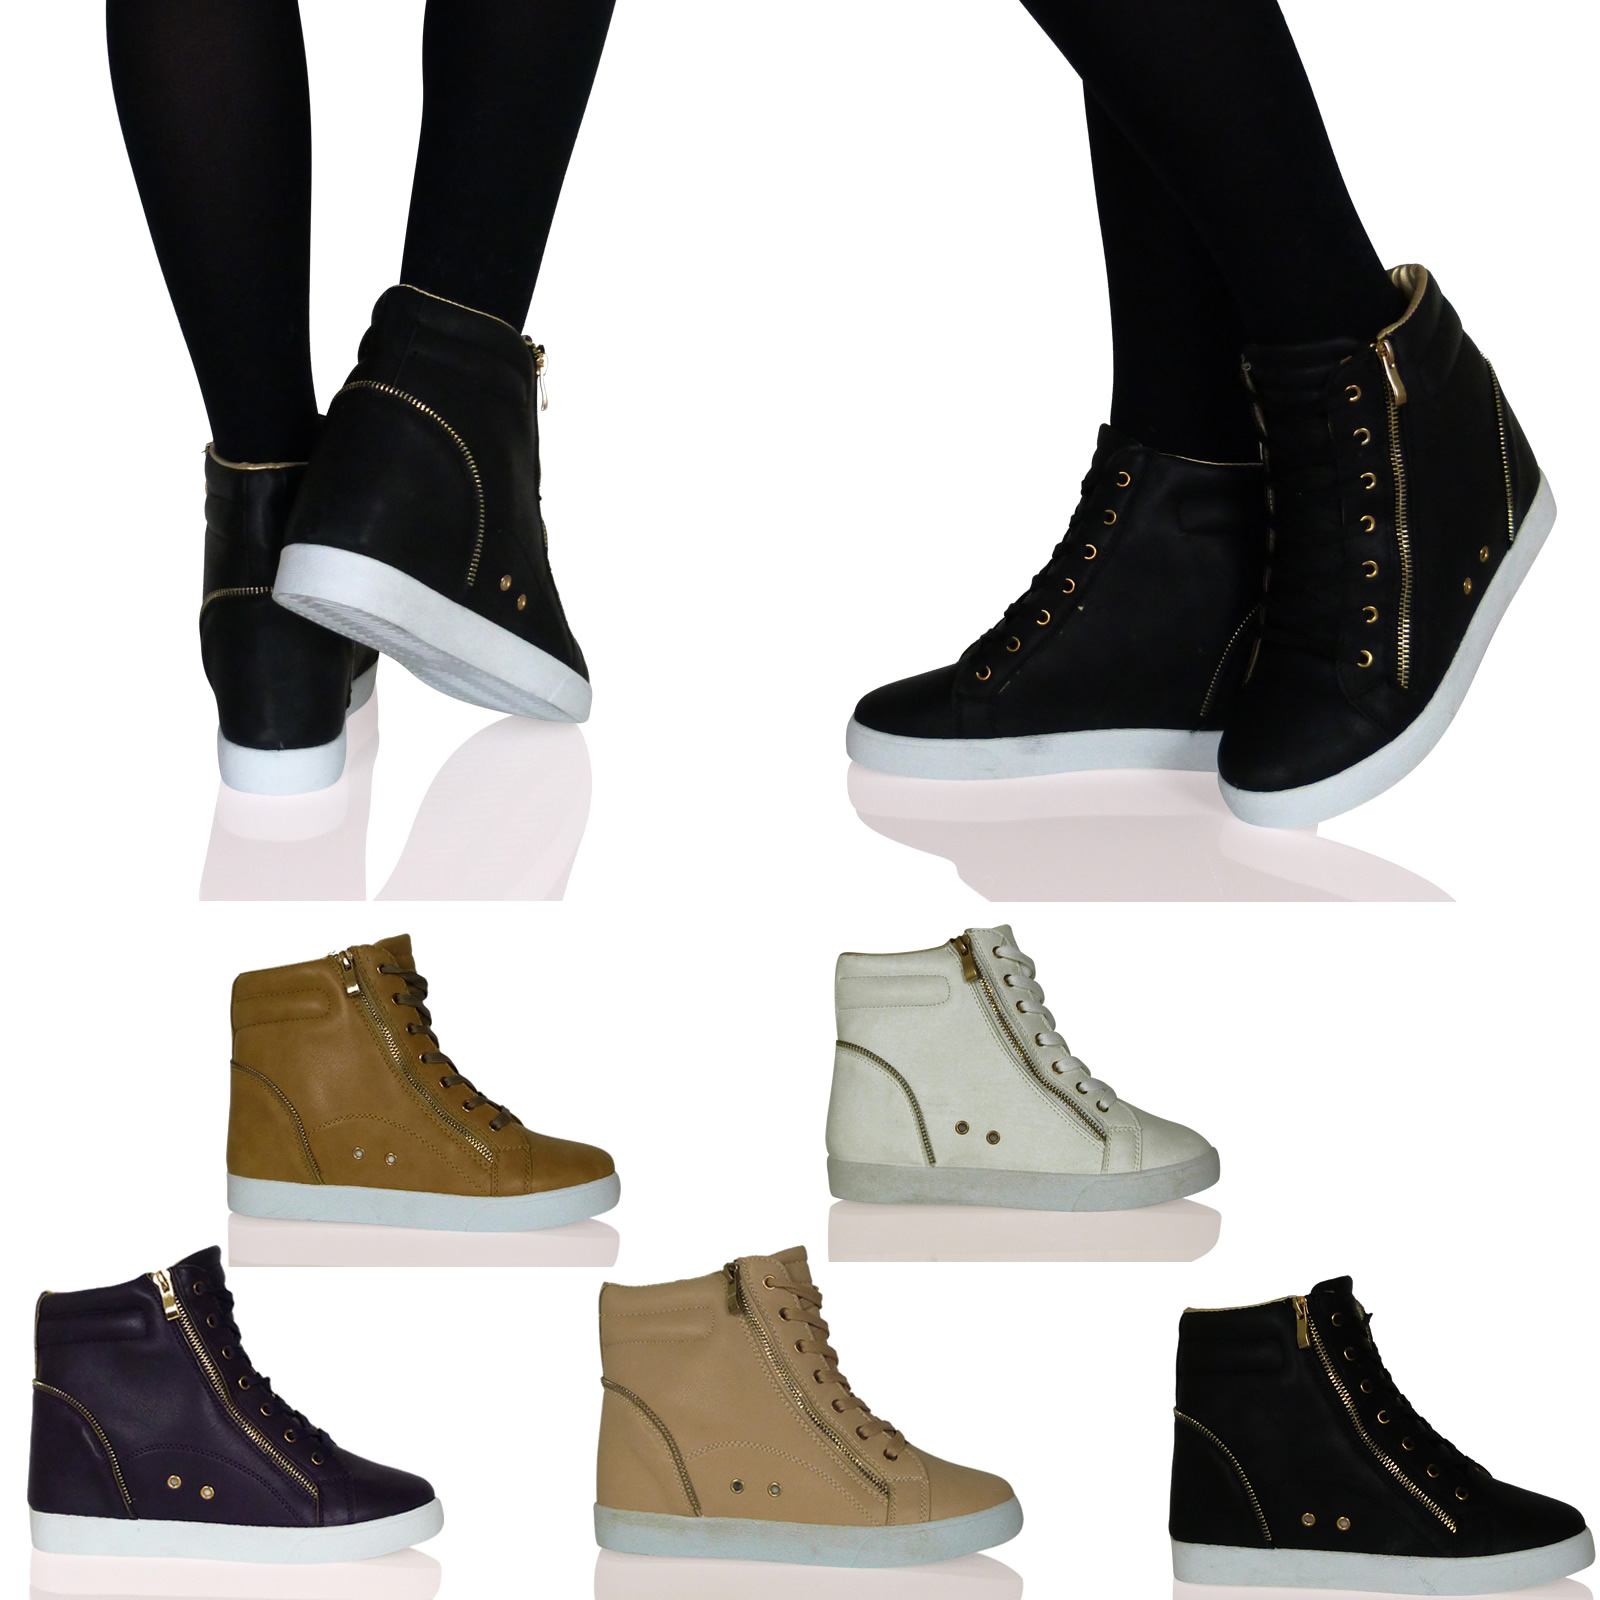 Z1L WOMENS LADIES FLATS SNEAKERS TRAINERS WEDGES CHUNKY ZIP UPS METALLIC SHOES